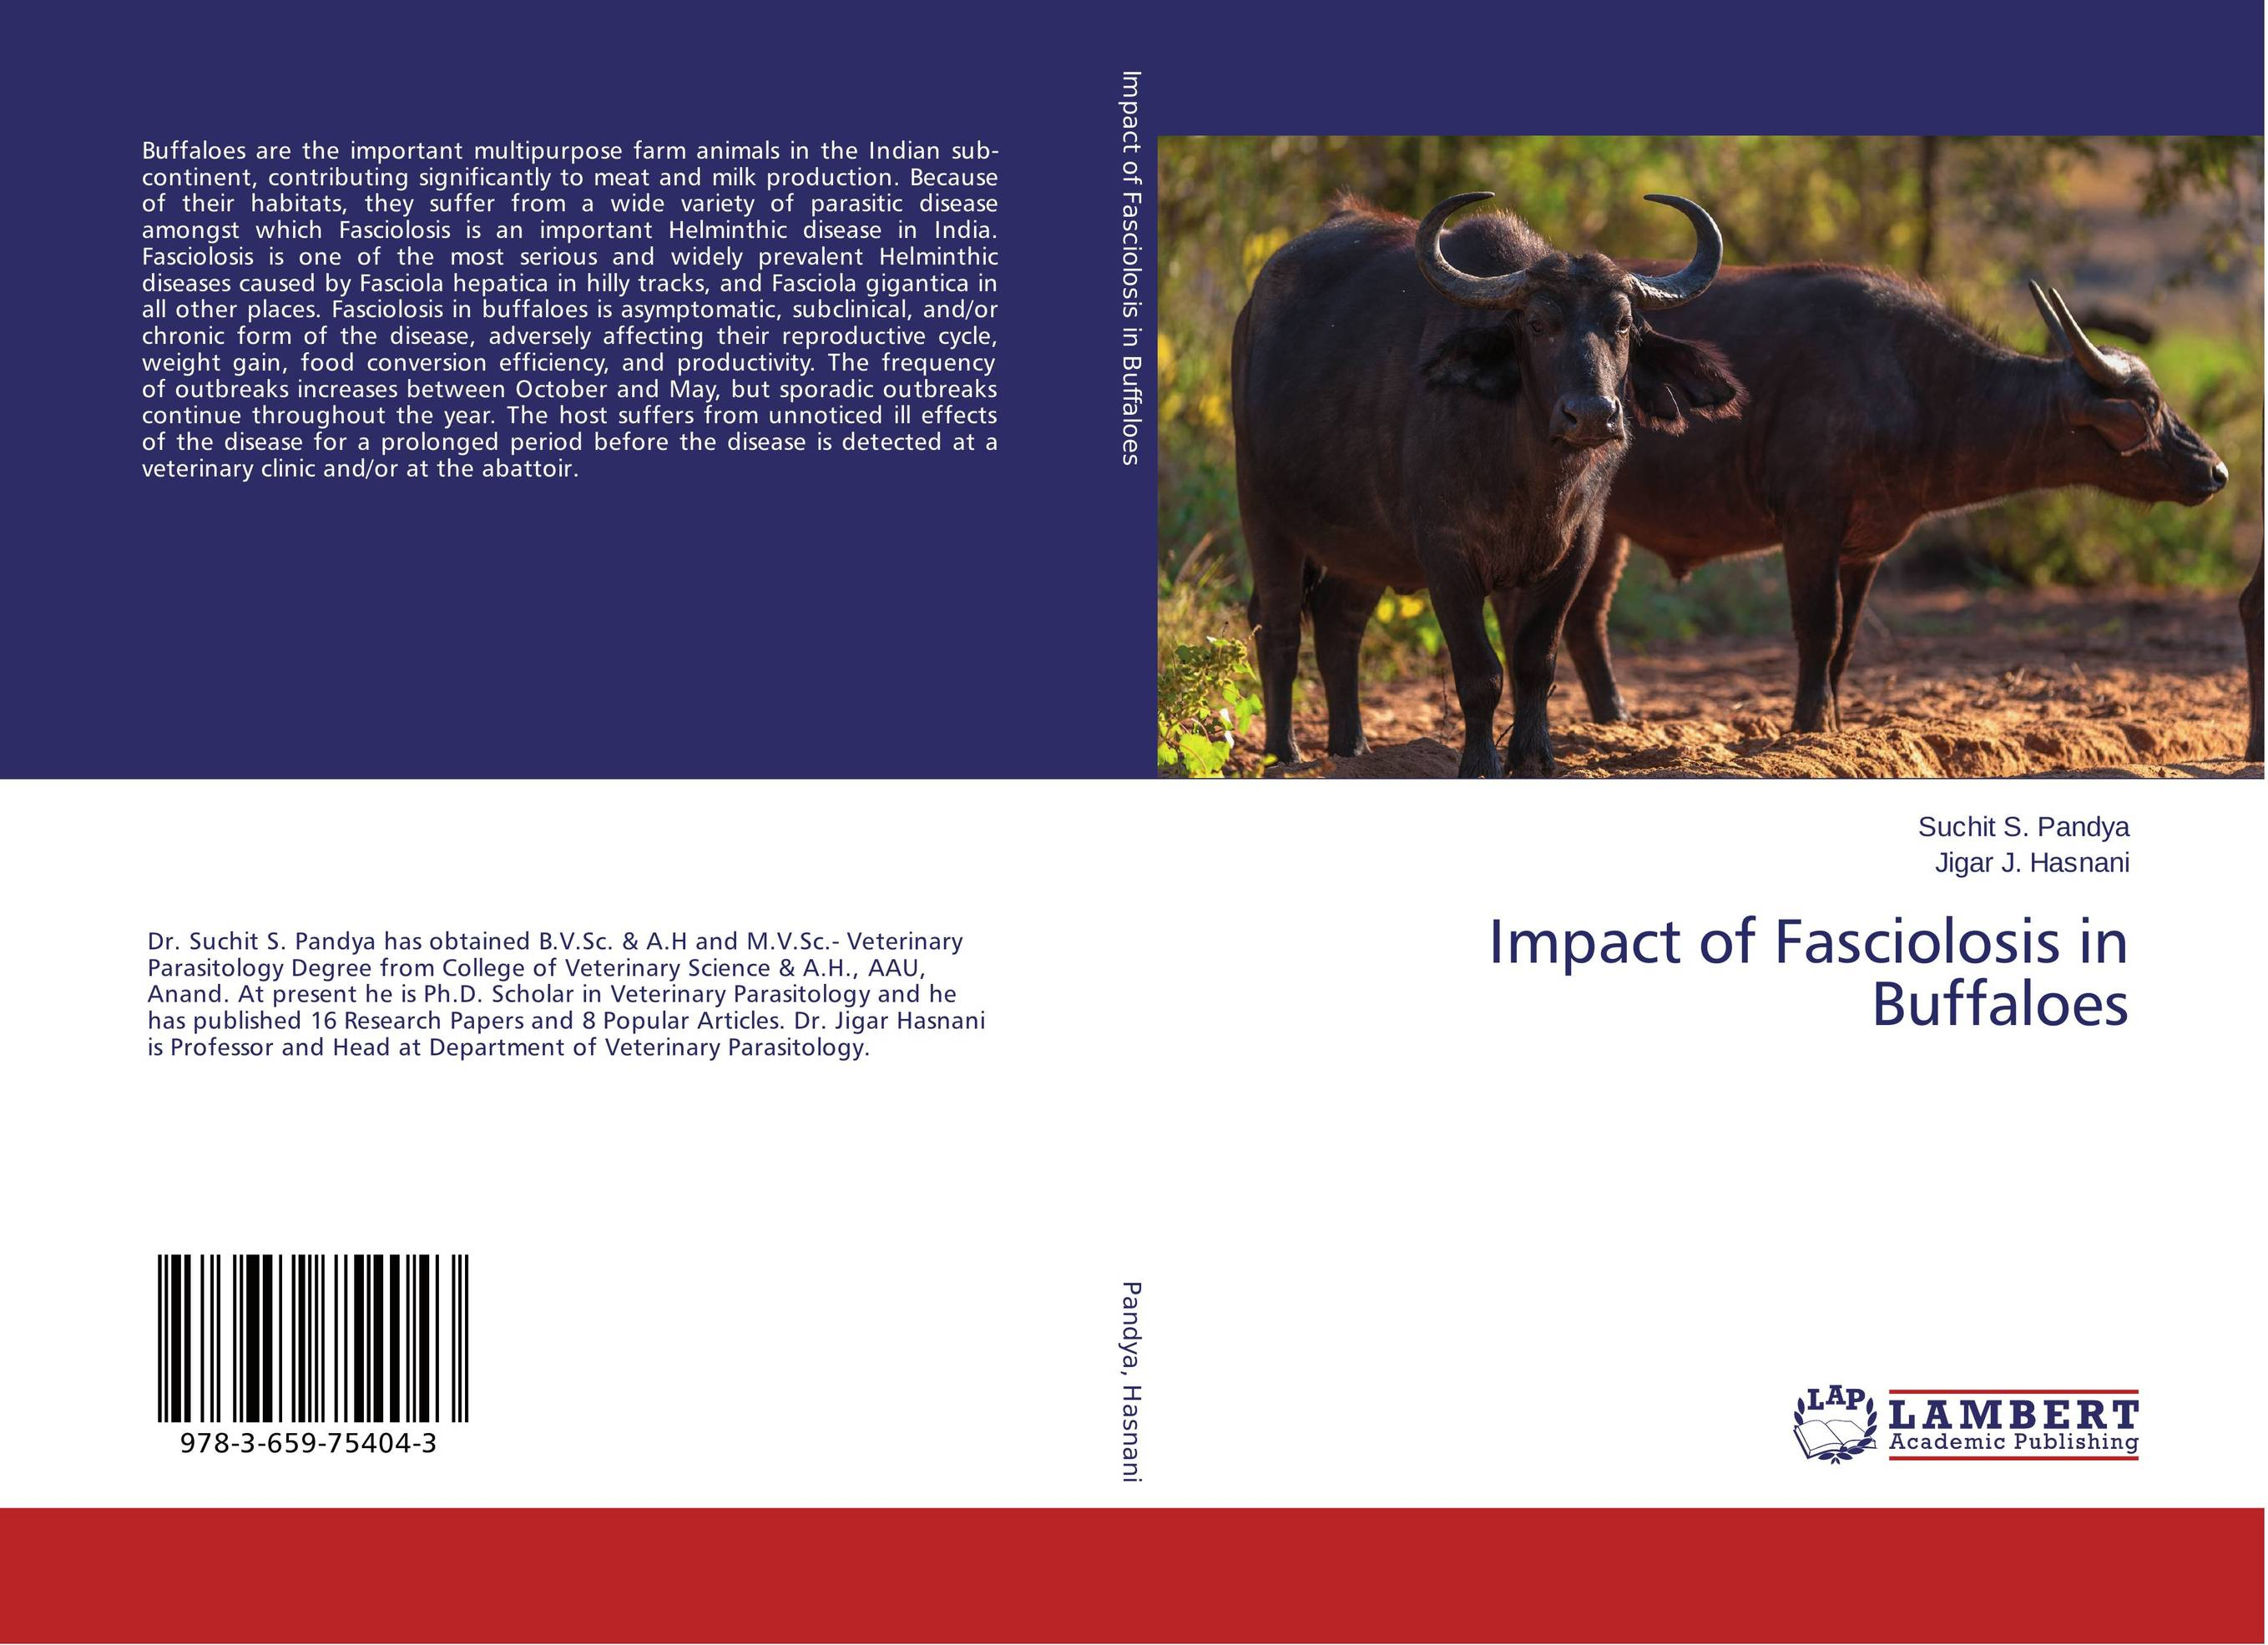 Impact of Fasciolosis in Buffaloes transition period in cows nutrition metabolism and metabolic disease